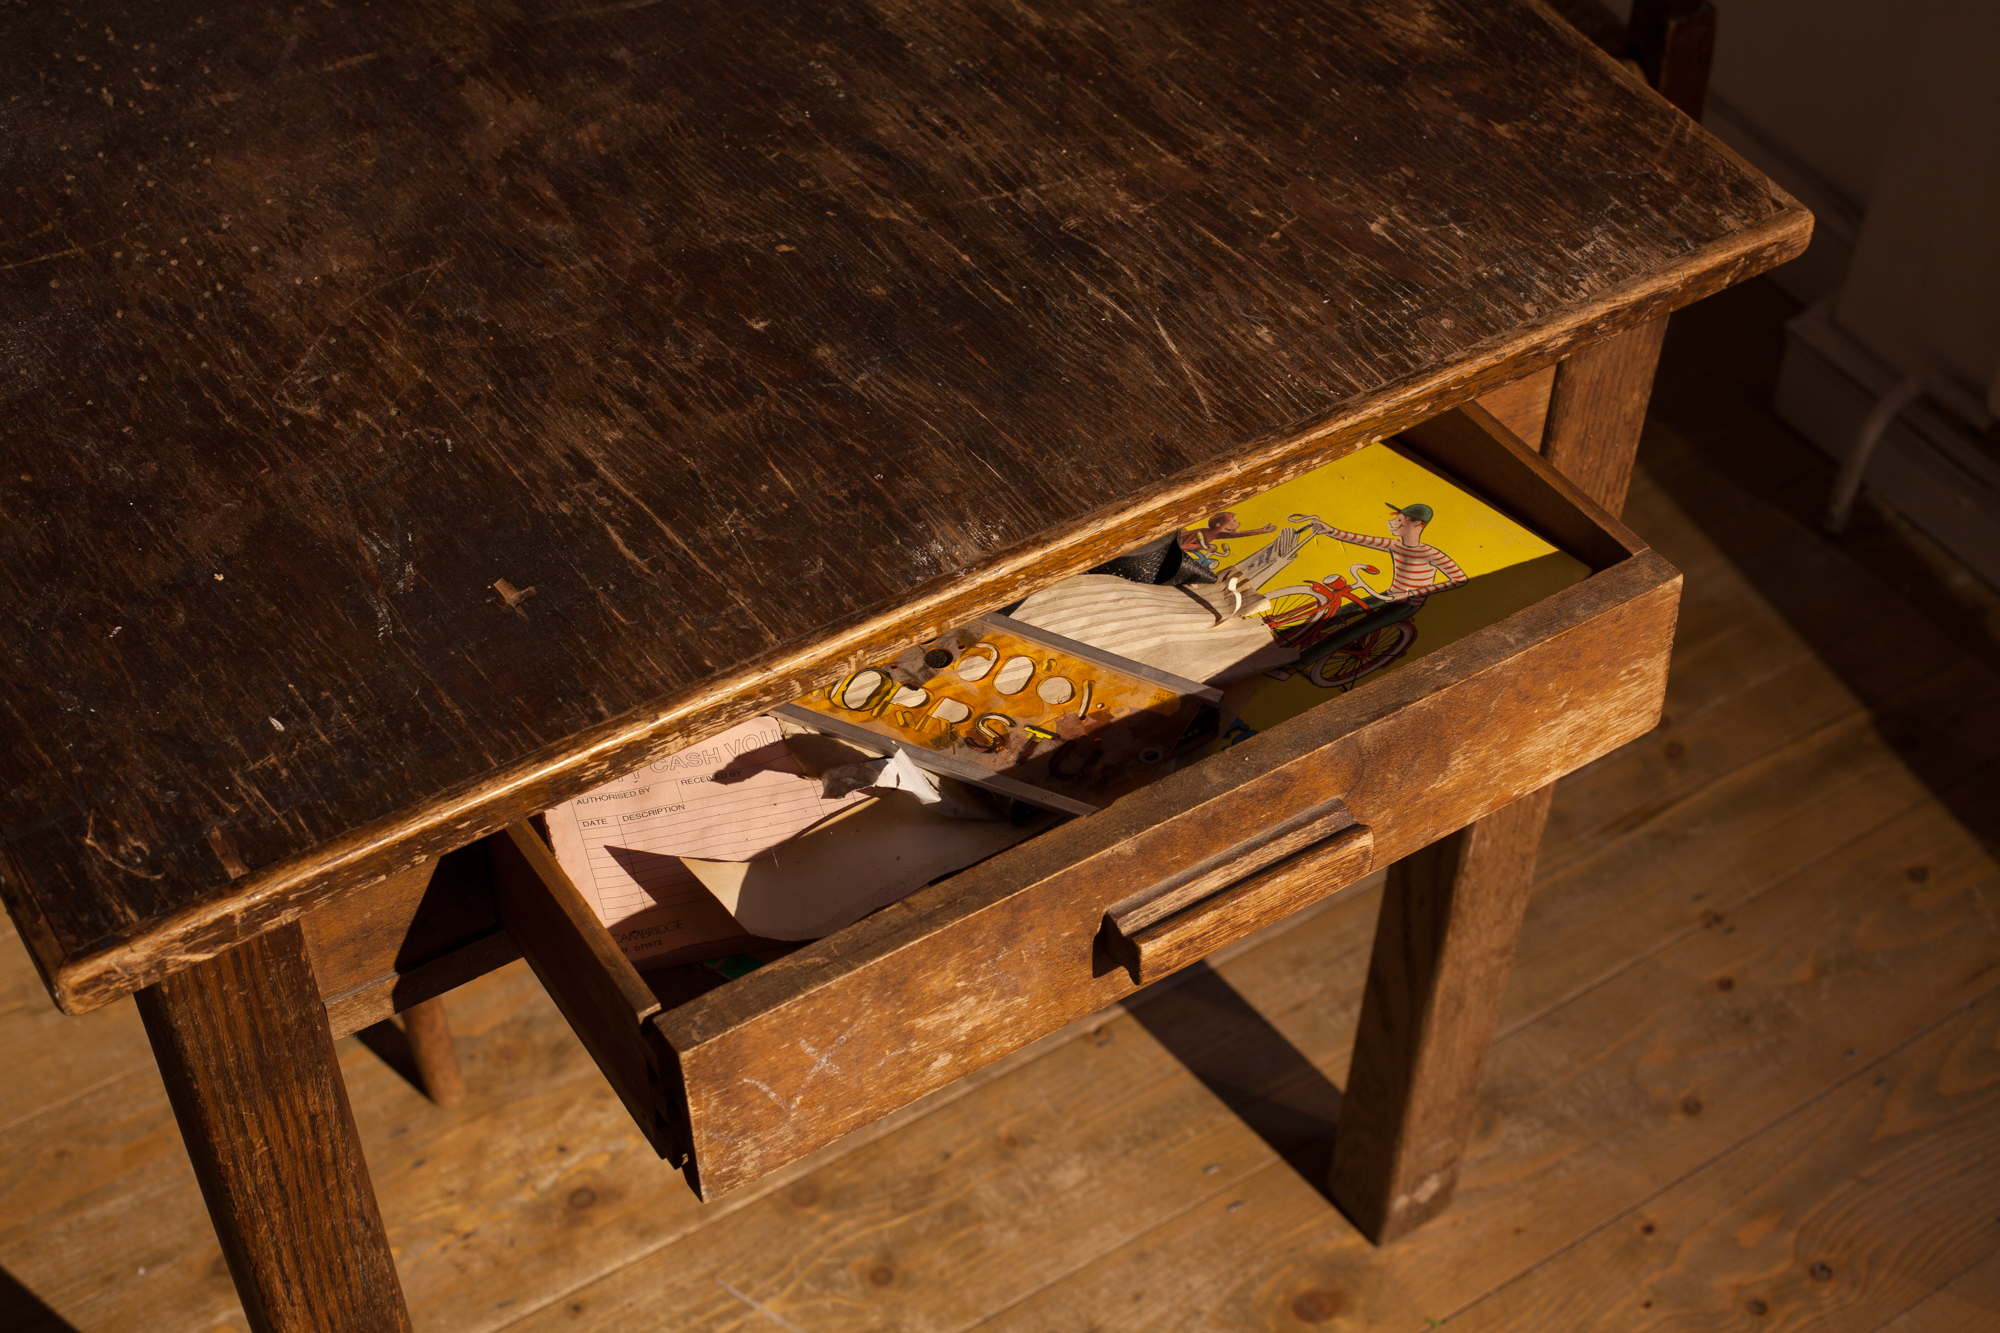 Katrina Palmer Dr Sinclair's Drawer, 2014. Photo: Reuben Henry (DR SINCLAIR'S DRAWER 	 0)